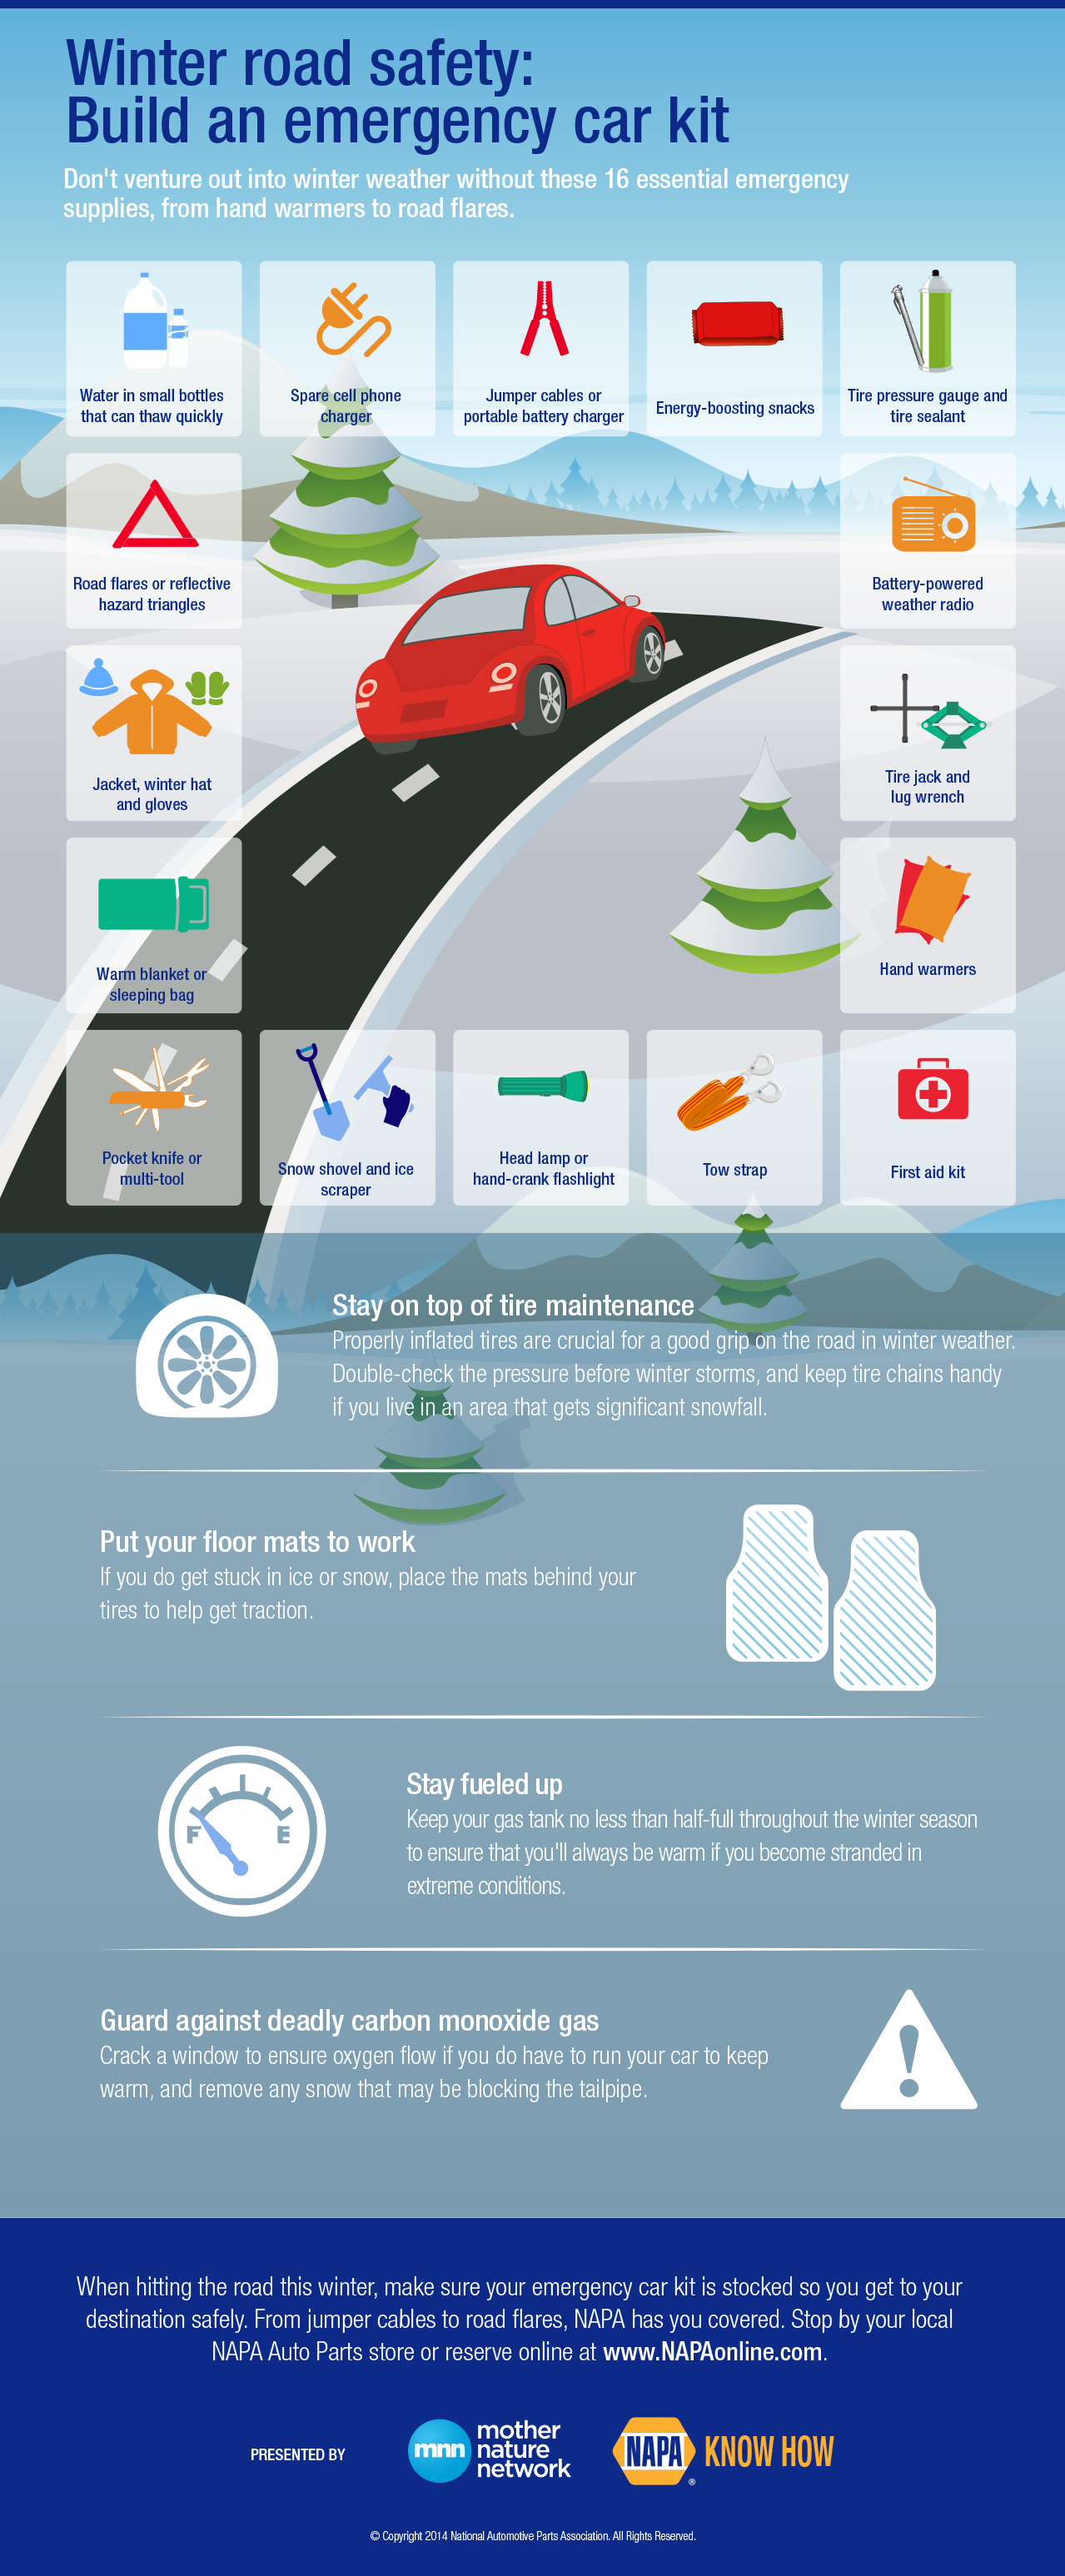 Winter road safety: Build an emergency car kit [infographic